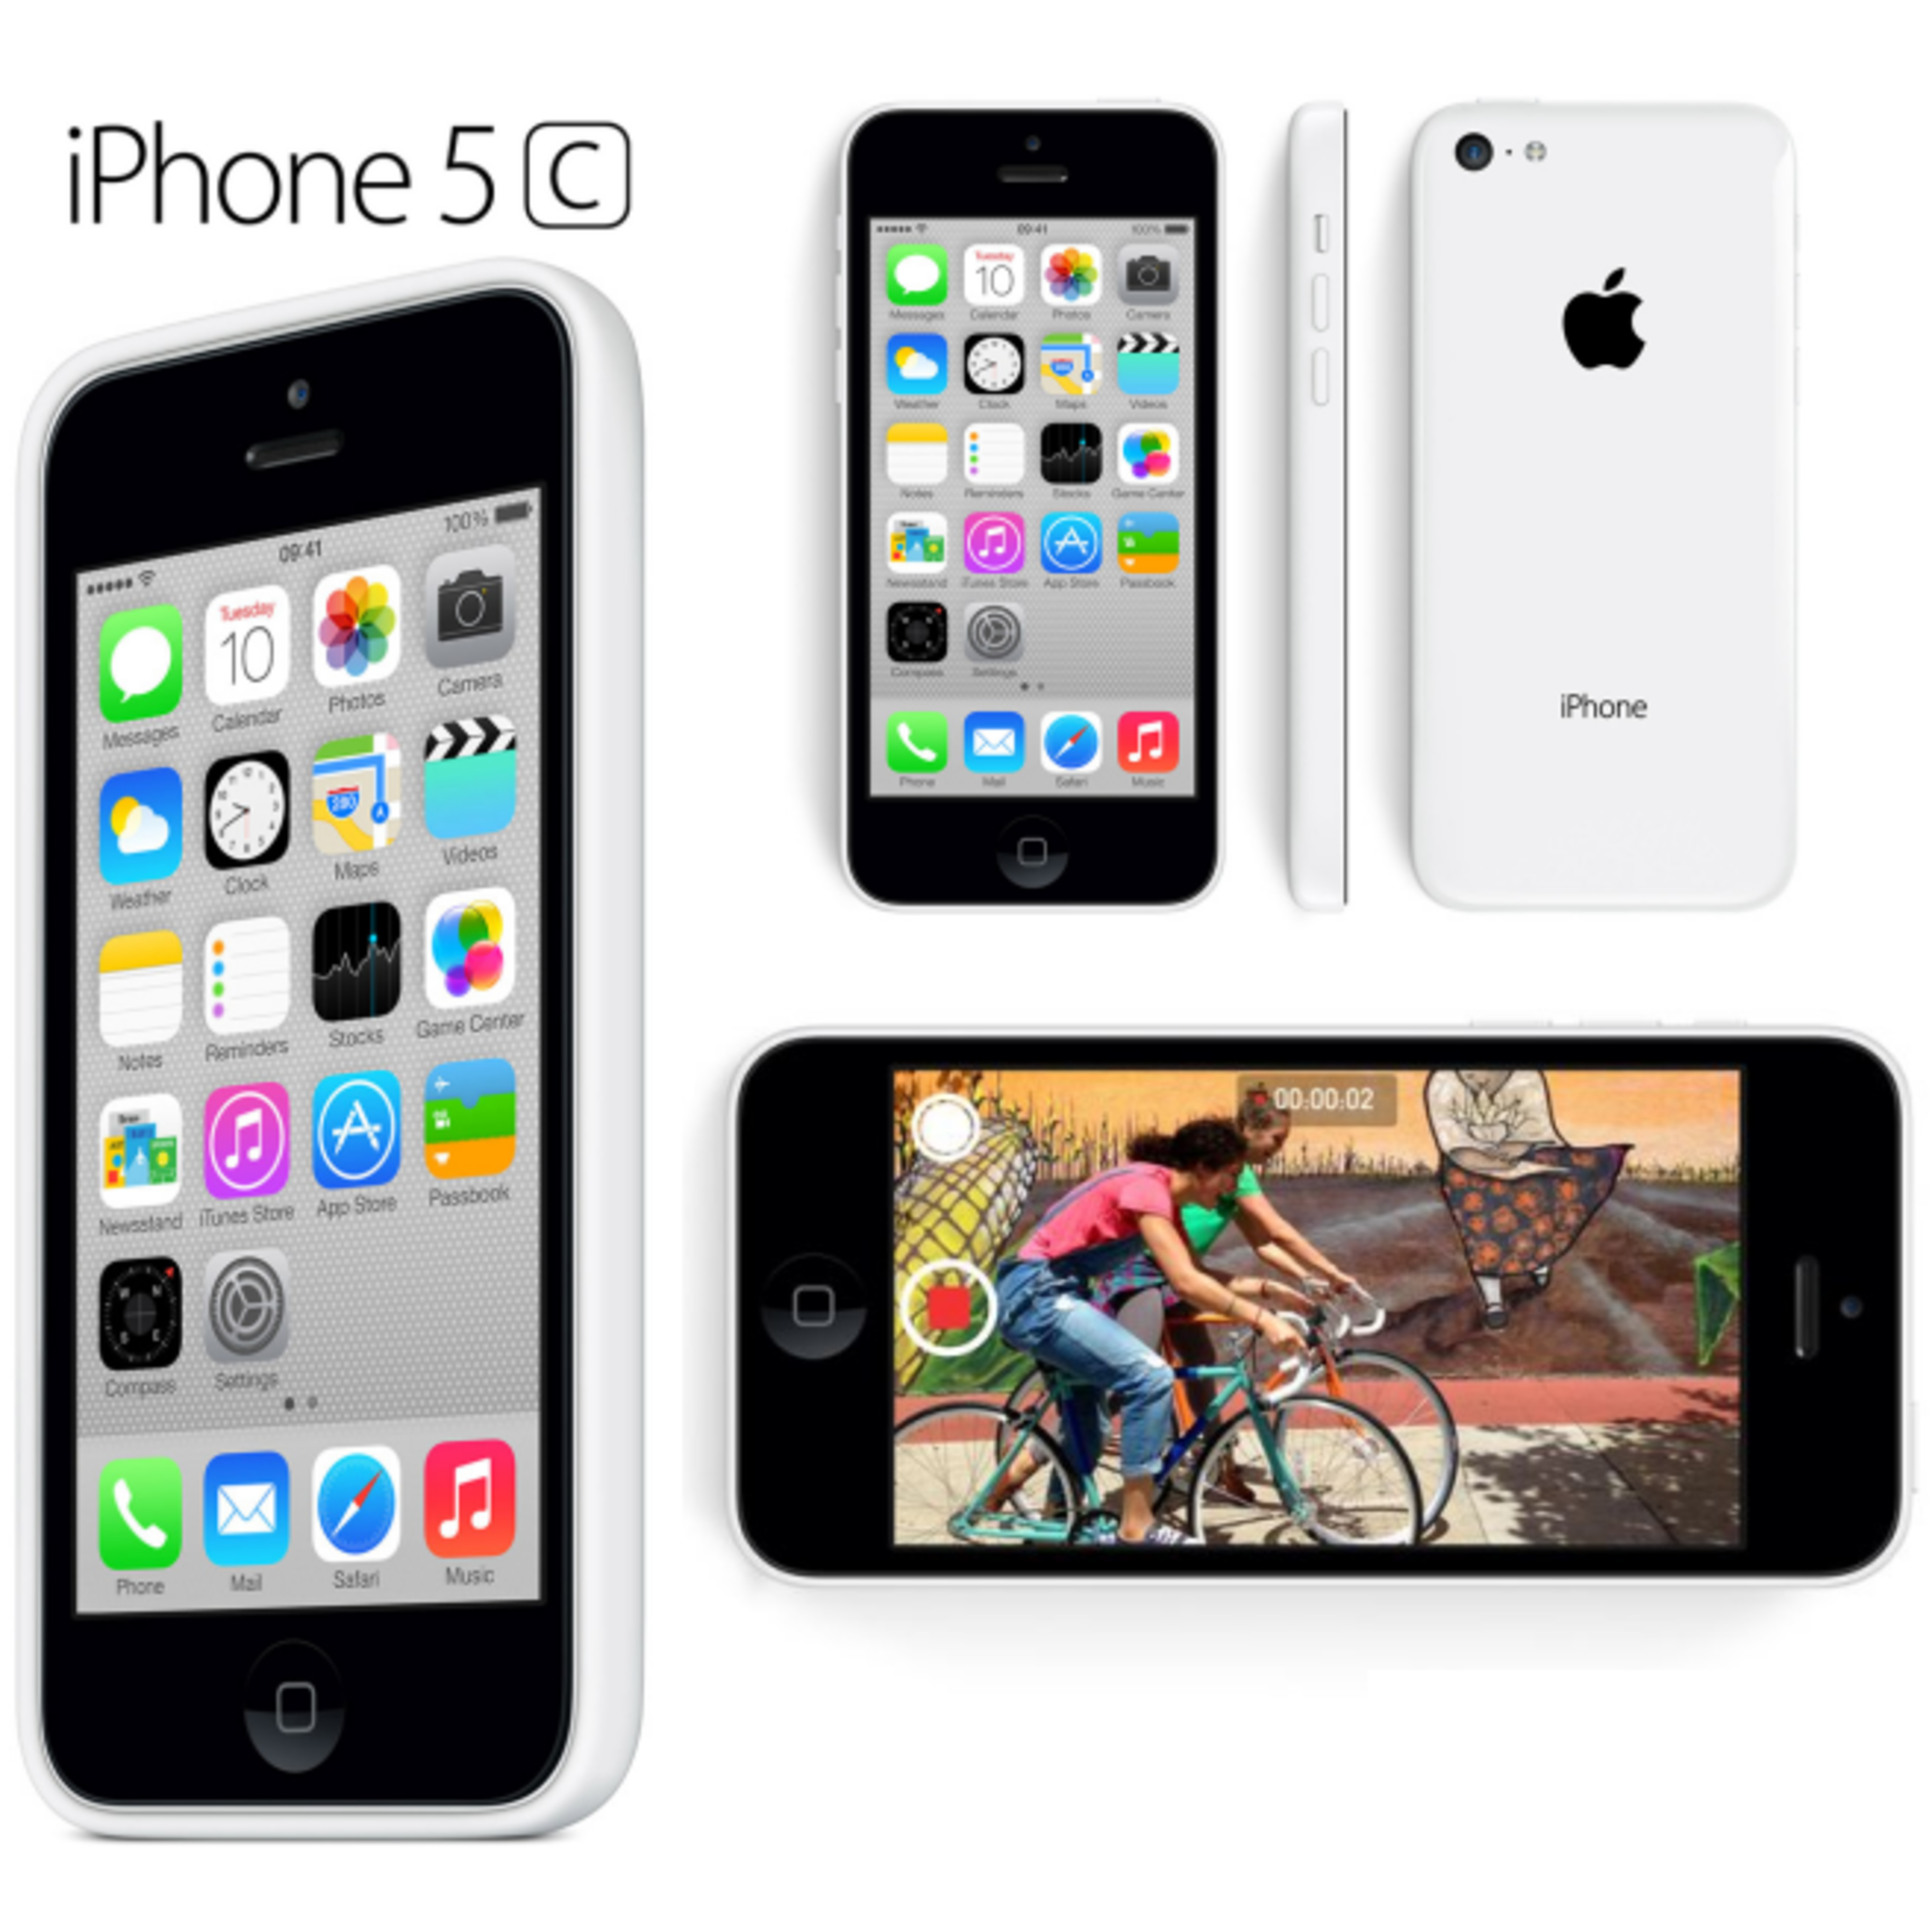 apple iphone 5c 8gb factory unlocked gsm 4g lte 8mp camera. Black Bedroom Furniture Sets. Home Design Ideas